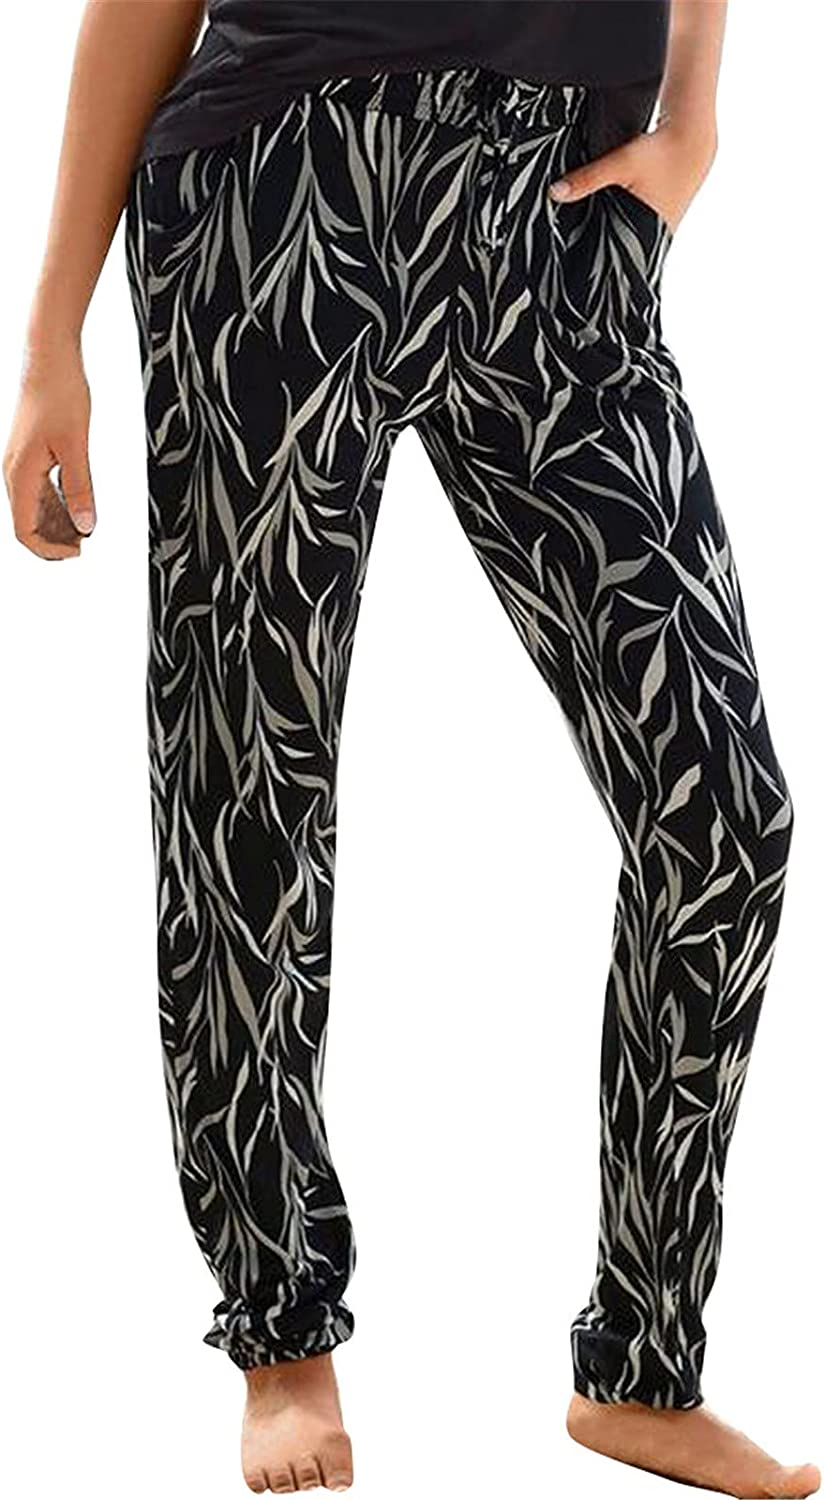 Boho Super sale period limited Print Pants for Women High Inexpensive wi Foot Beam Casual Waist